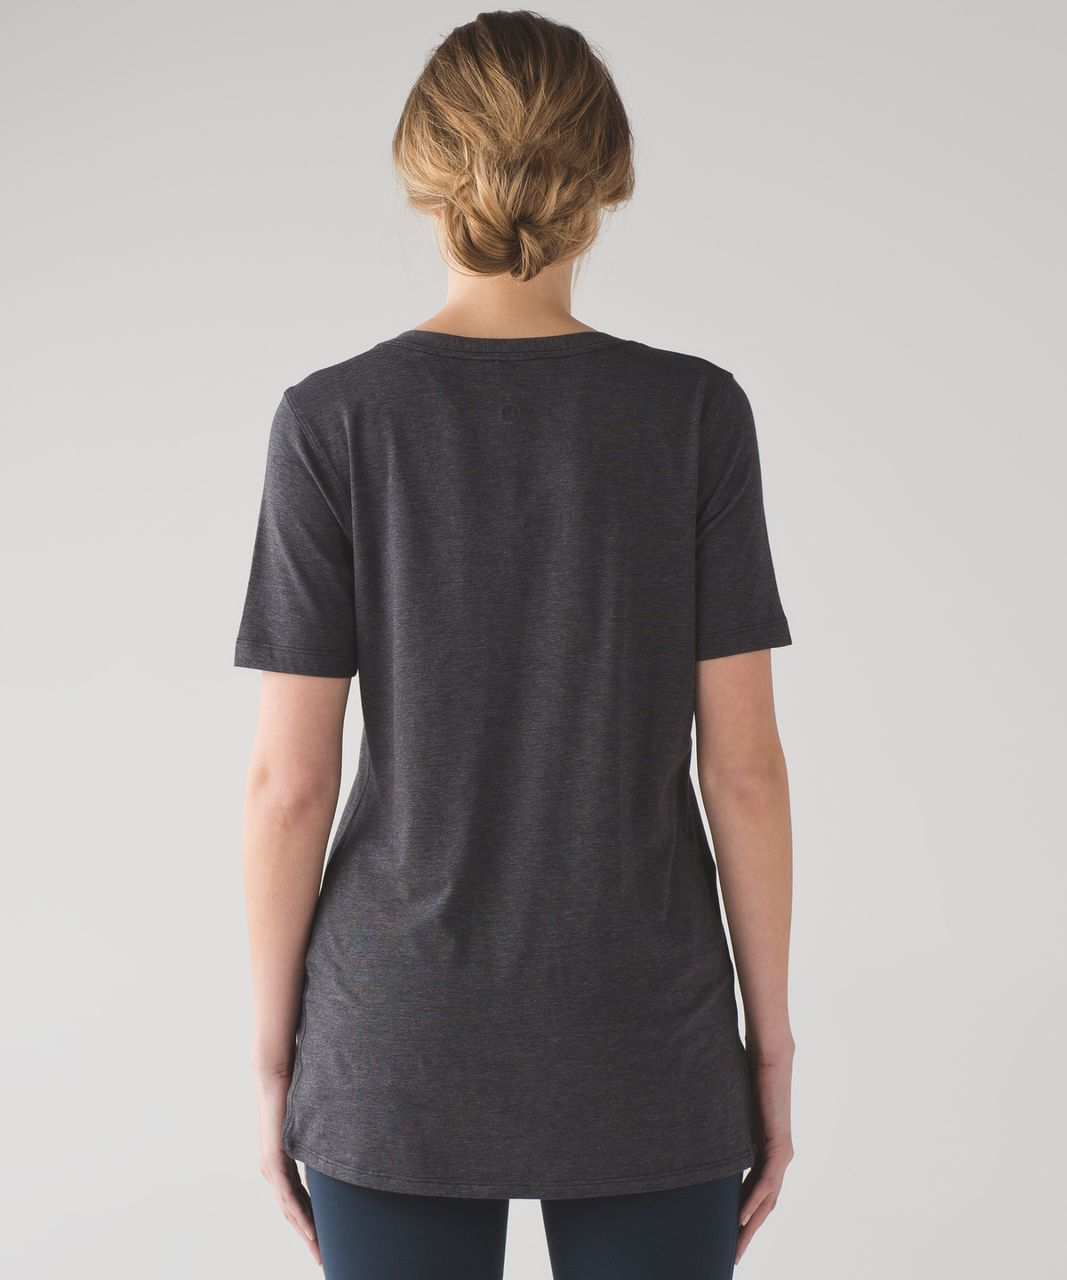 Lululemon Love Tee IV - Mini Stripe Heathered Pitch Grey Black